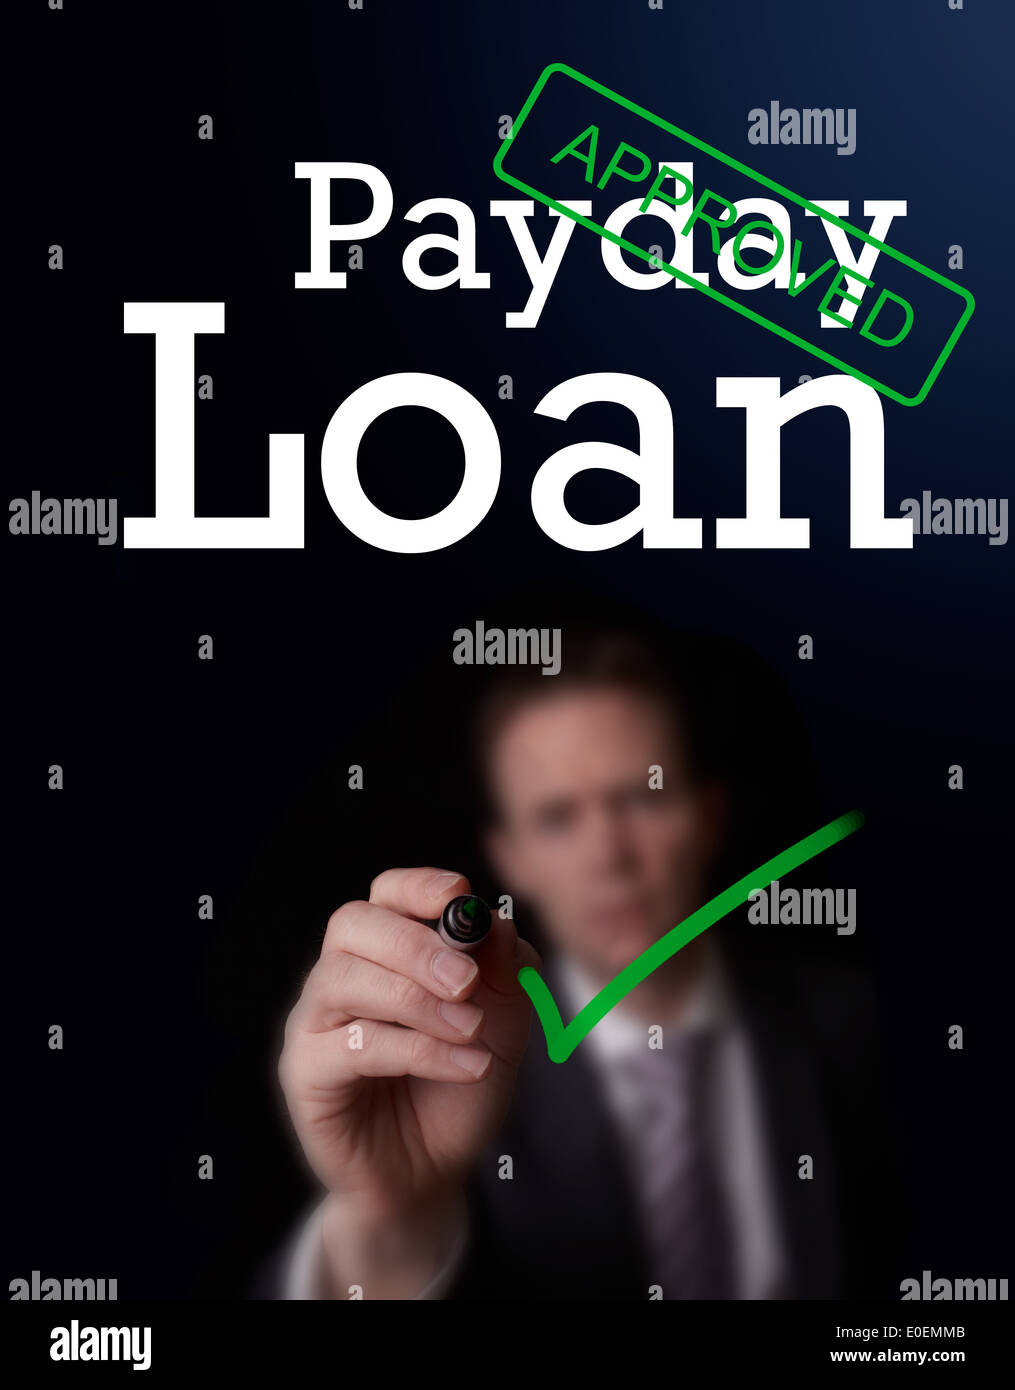 Easiest way to get payday loan picture 6